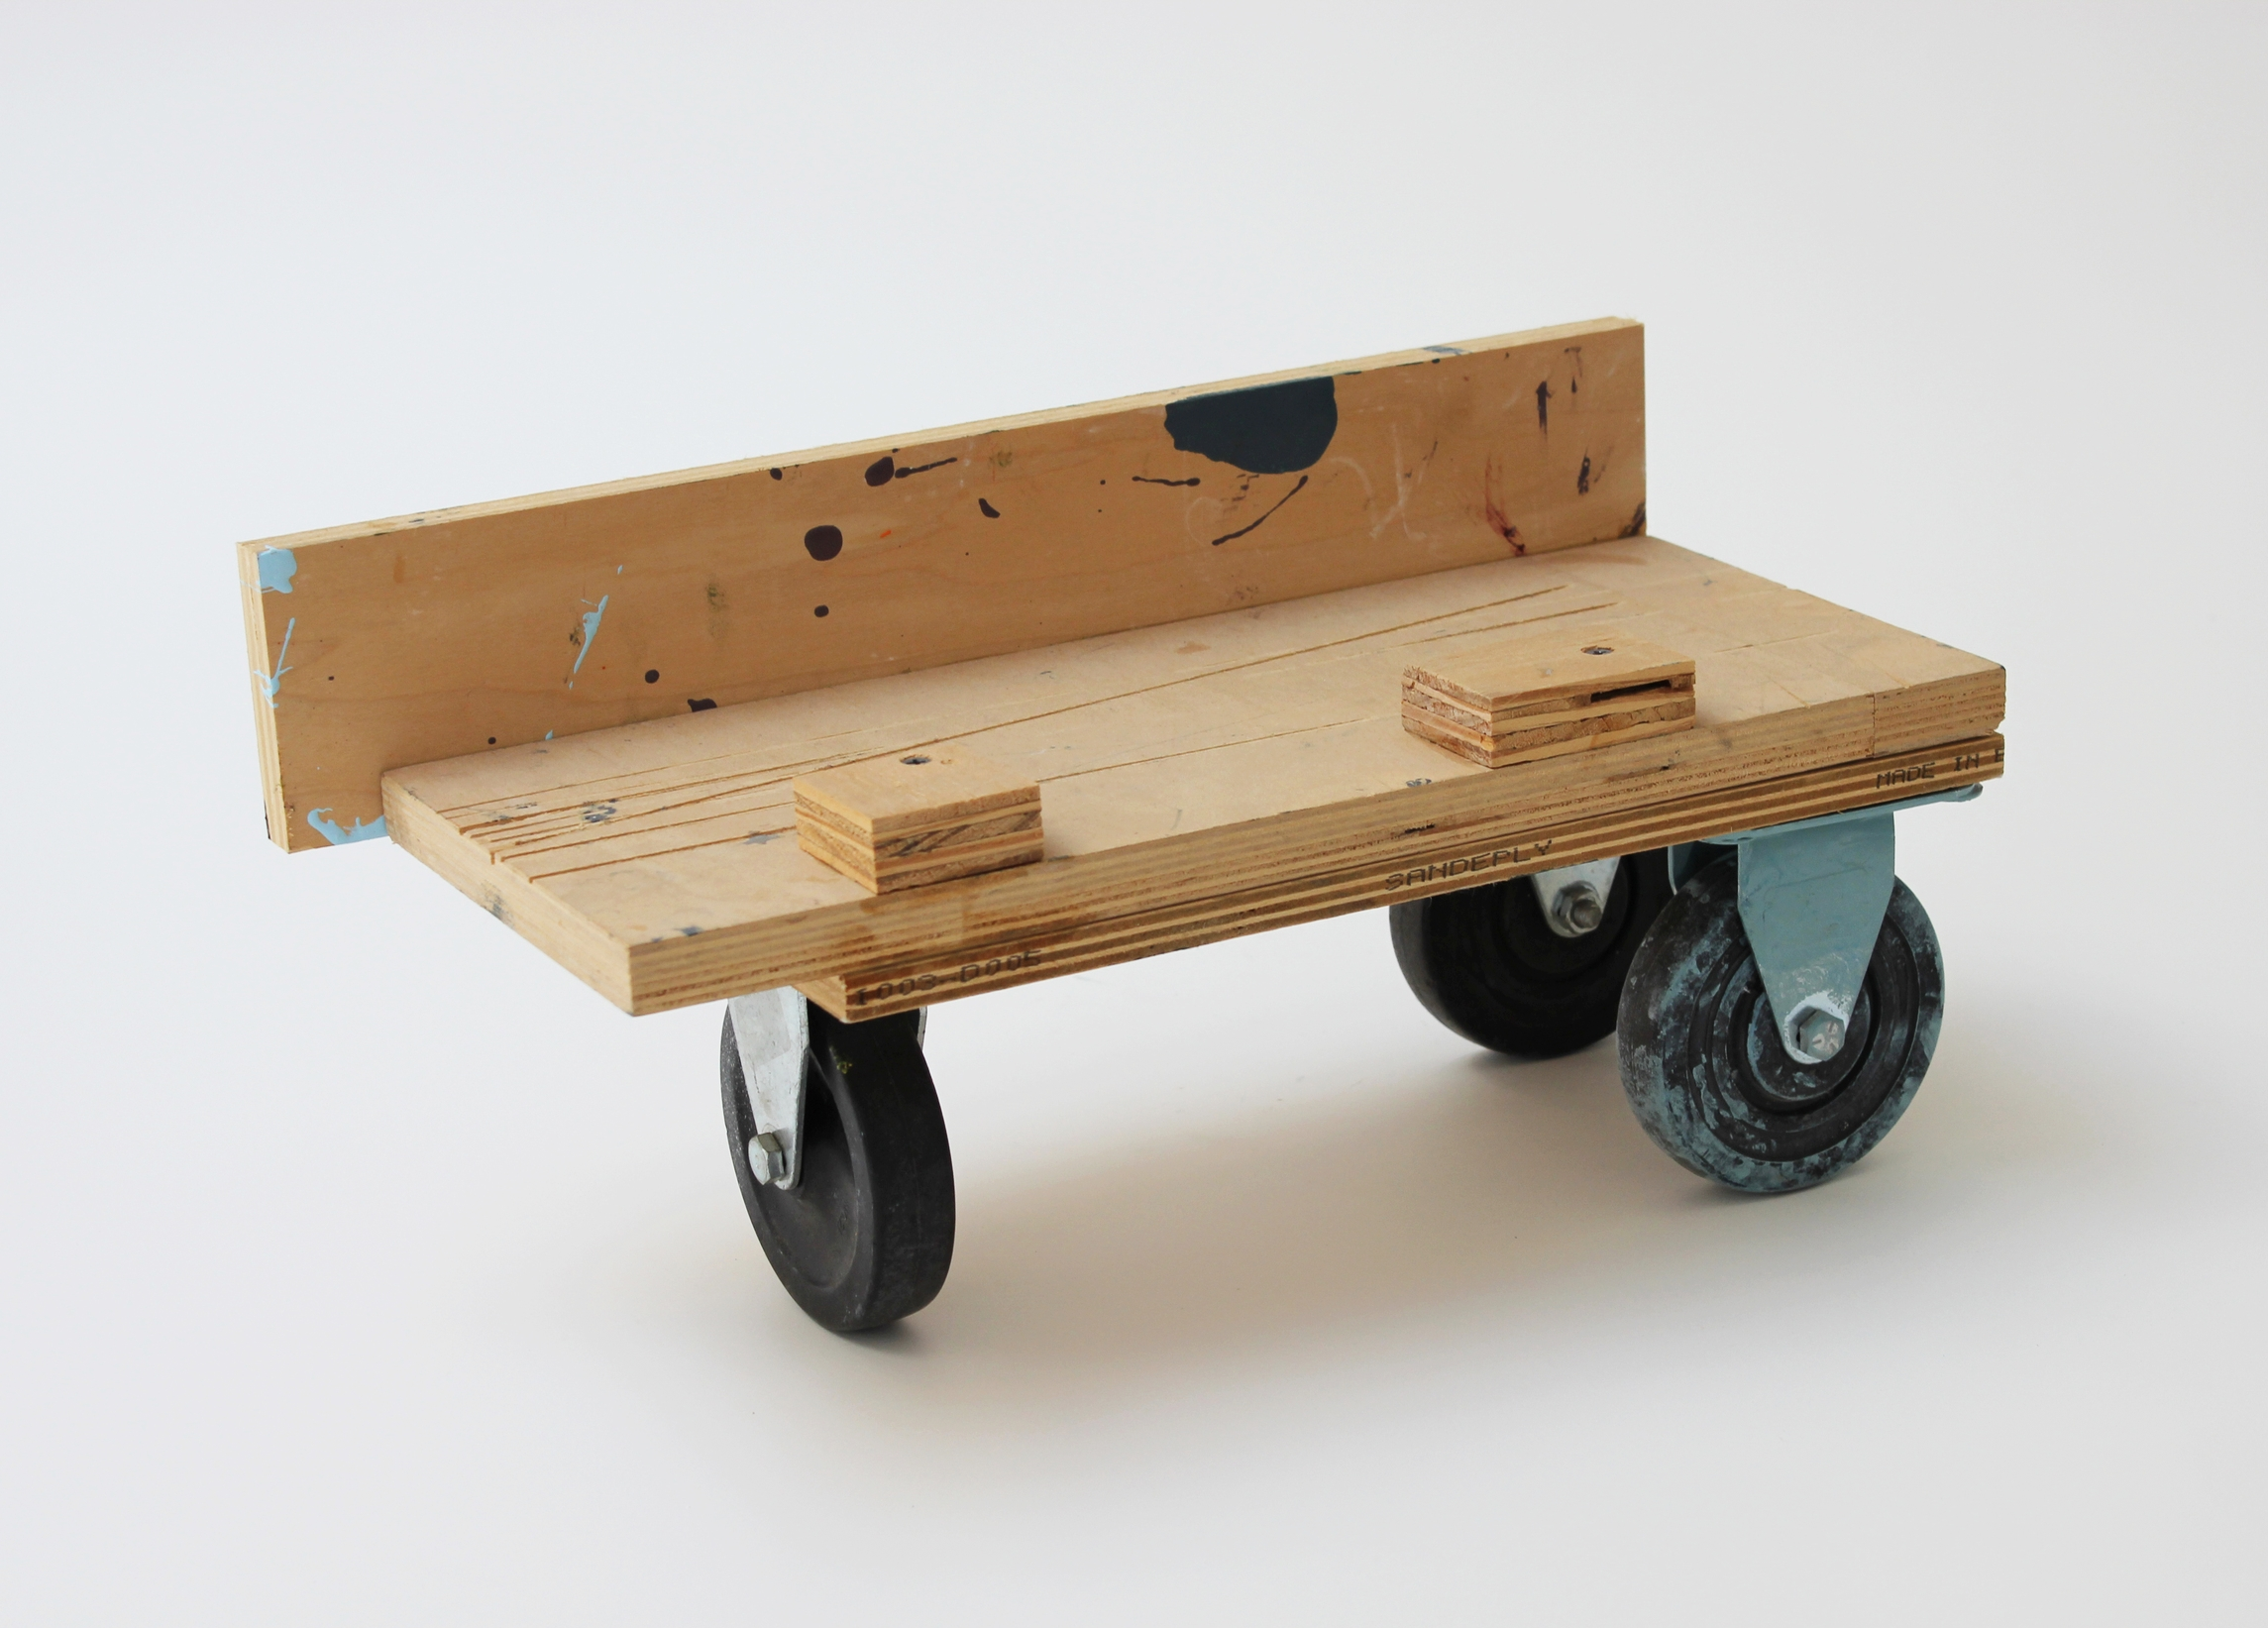 Small Rolling Platform #71 2015 8.5 x 17 x 7.75 inches